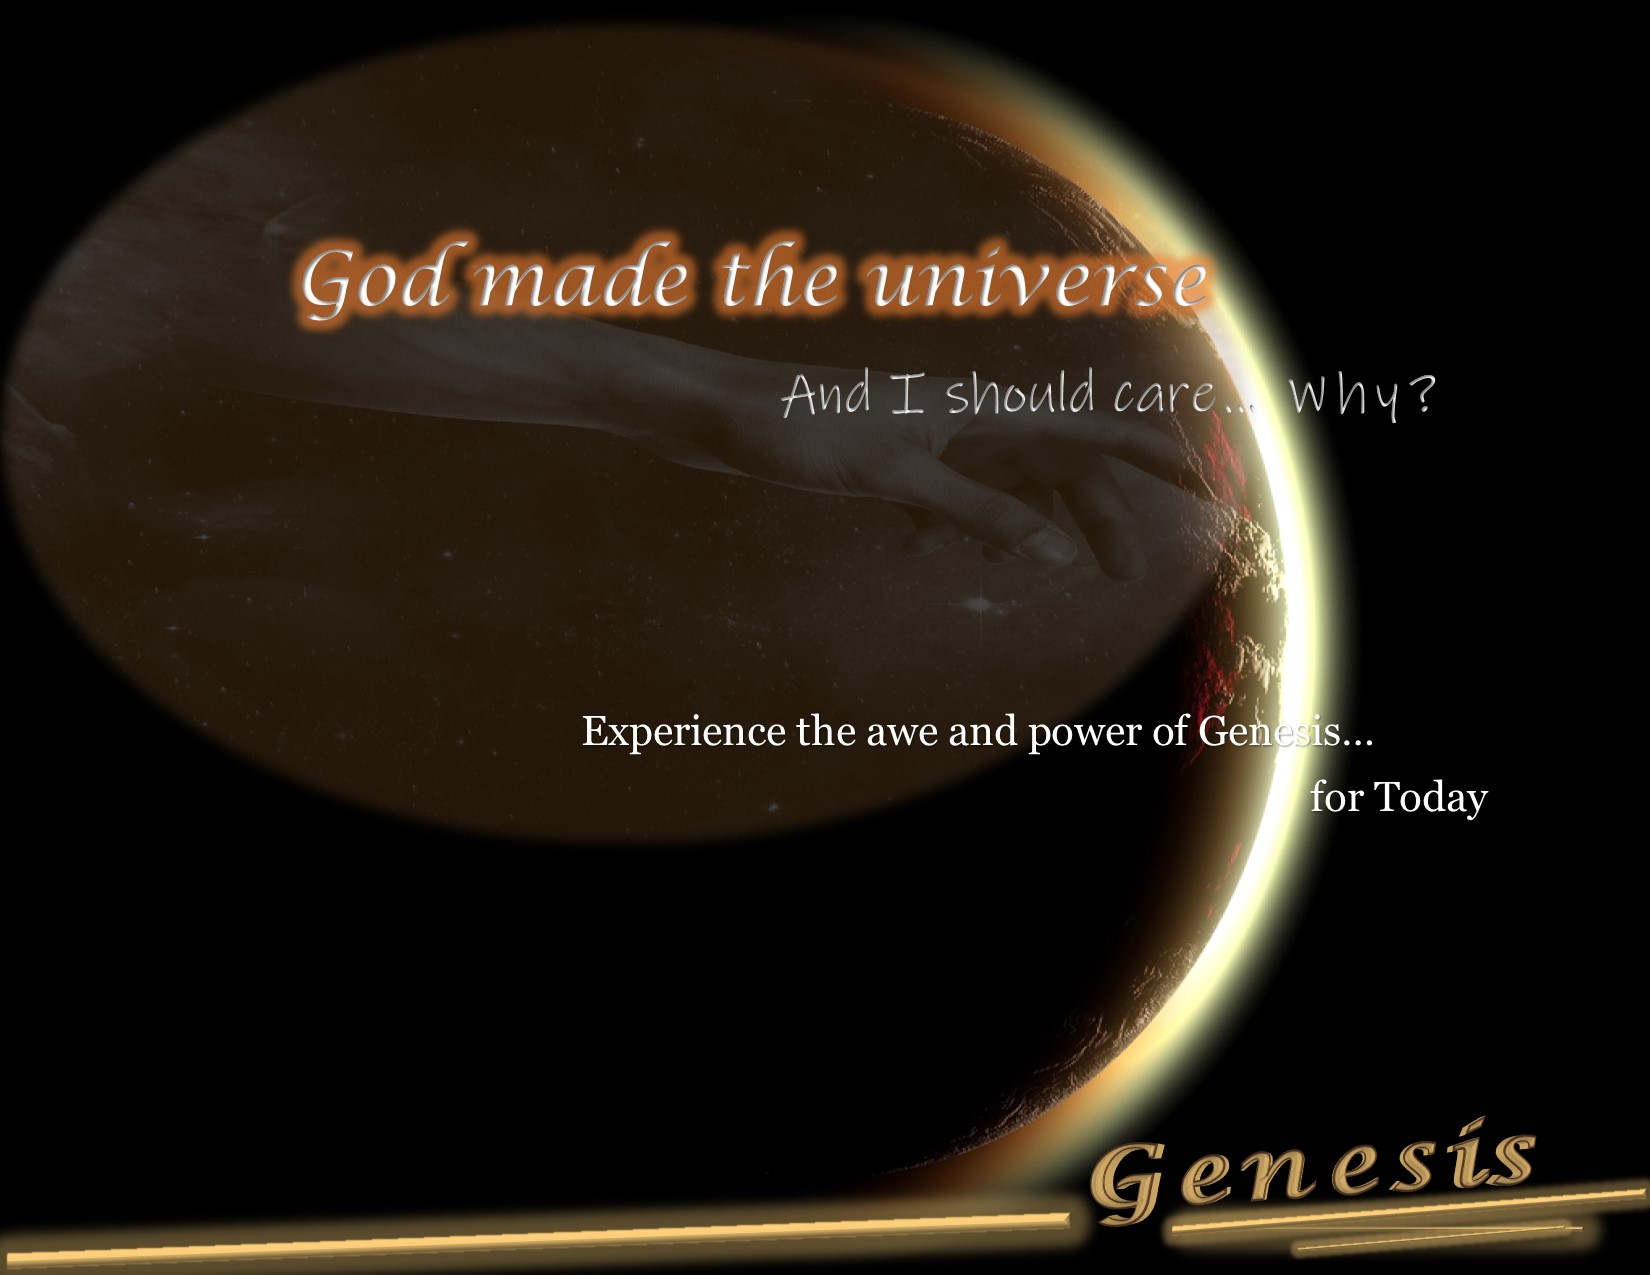 Reimagine Genesis experience the awe of Genesis for today